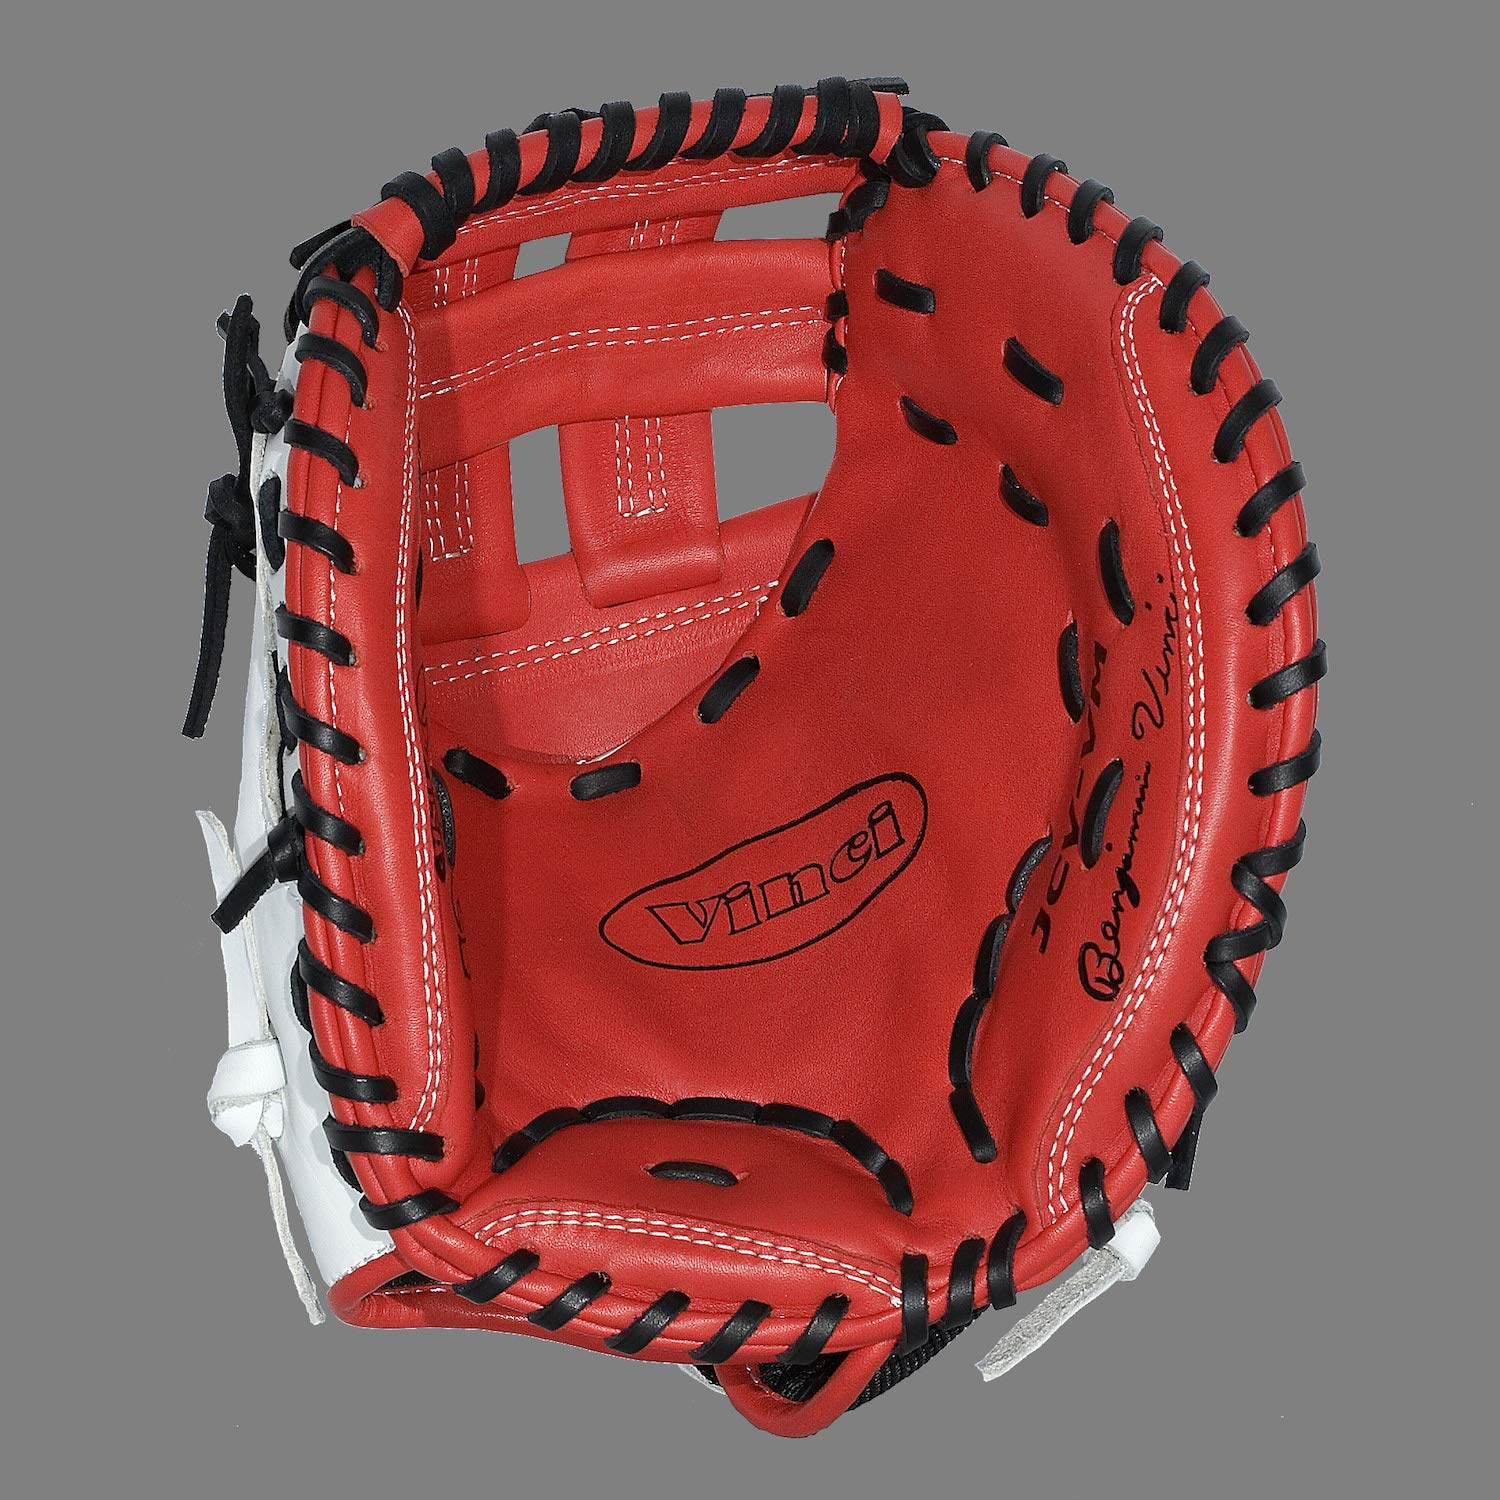 "Vinci Mesh Series JCV33 Red & White with Black Mesh 33"" Fastpitch Catcher"